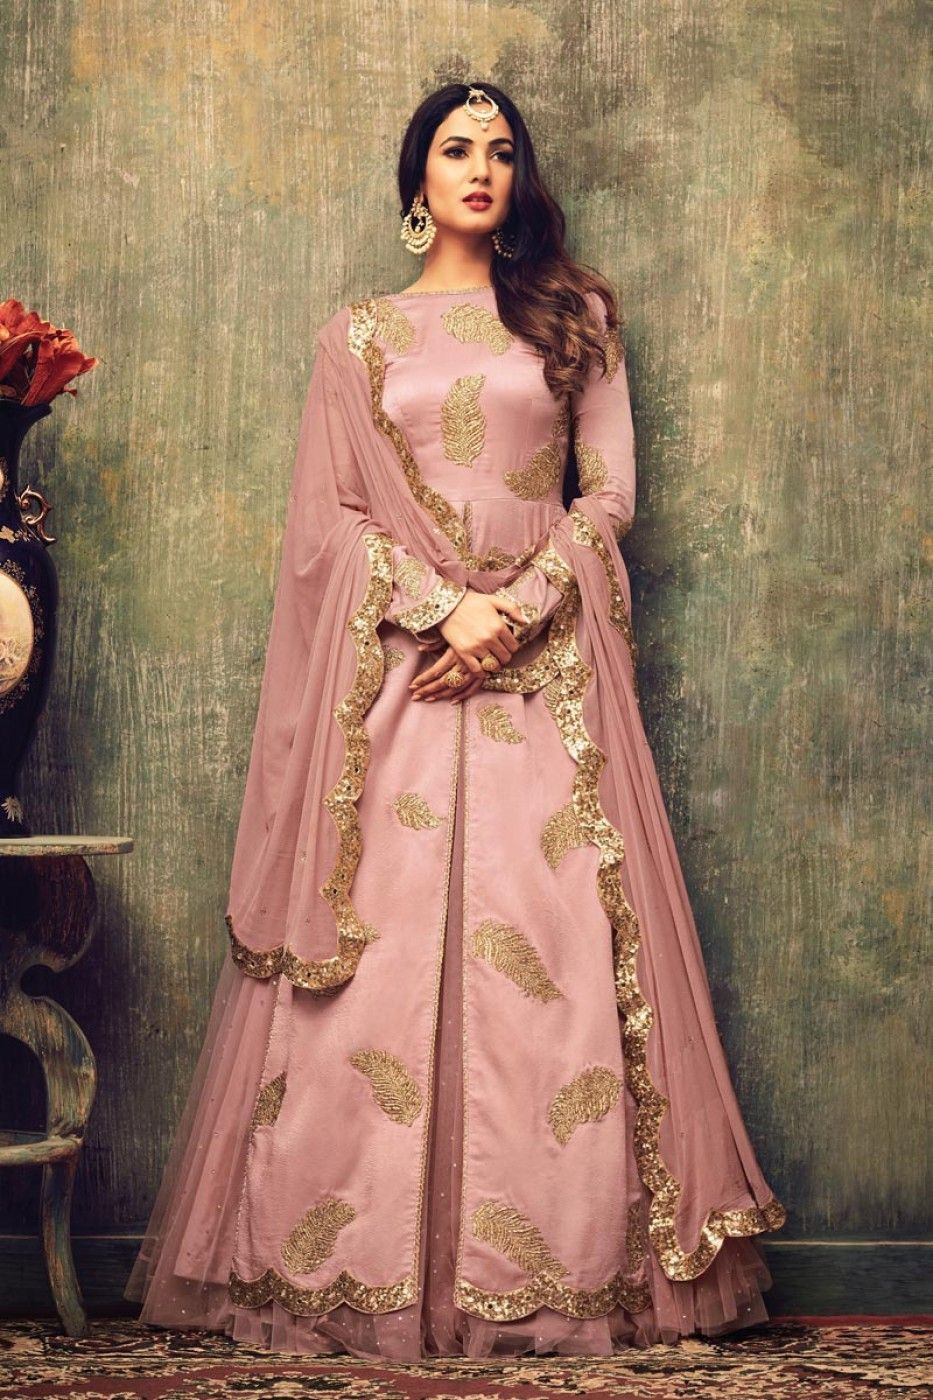 bd7f8a3497 Stunning Pink Color Designer Embroidered Net Fabric Salwar Kameez ...